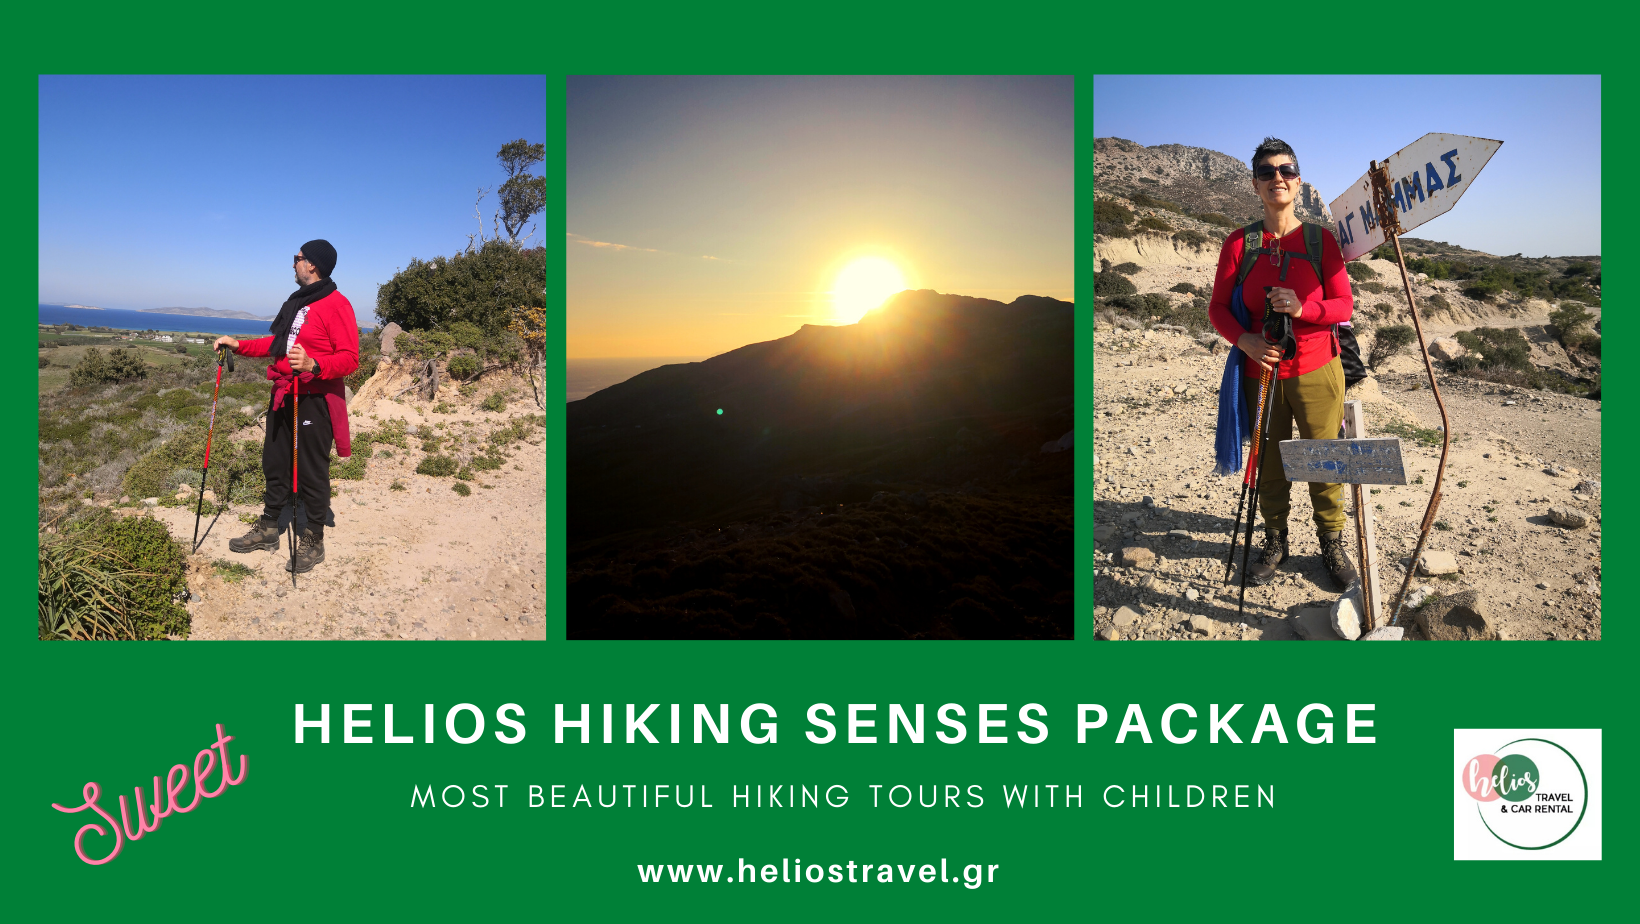 HELIOS HIKING SENSES PACKAGE - Ideal hiking holidays for Familes